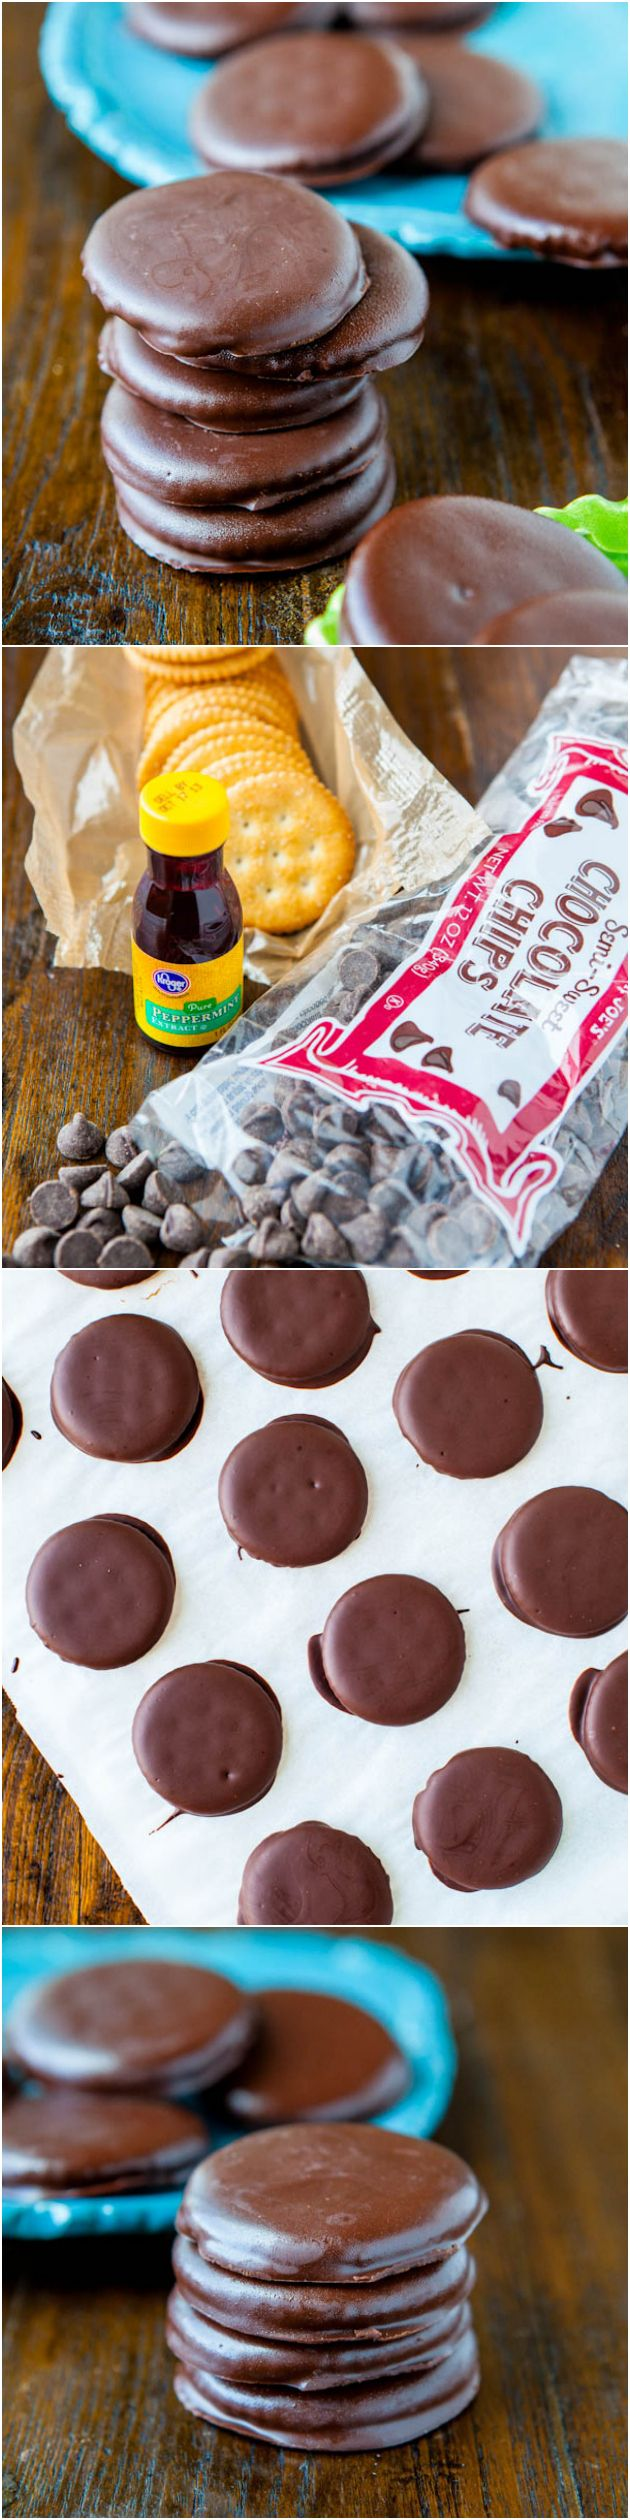 Homemade Thin Mints (no-bake, vegan) - Only 3 ingredients in this spot-on copycat version of real Thin Mints!  Ridiculously easy recipe at averiecooks.com